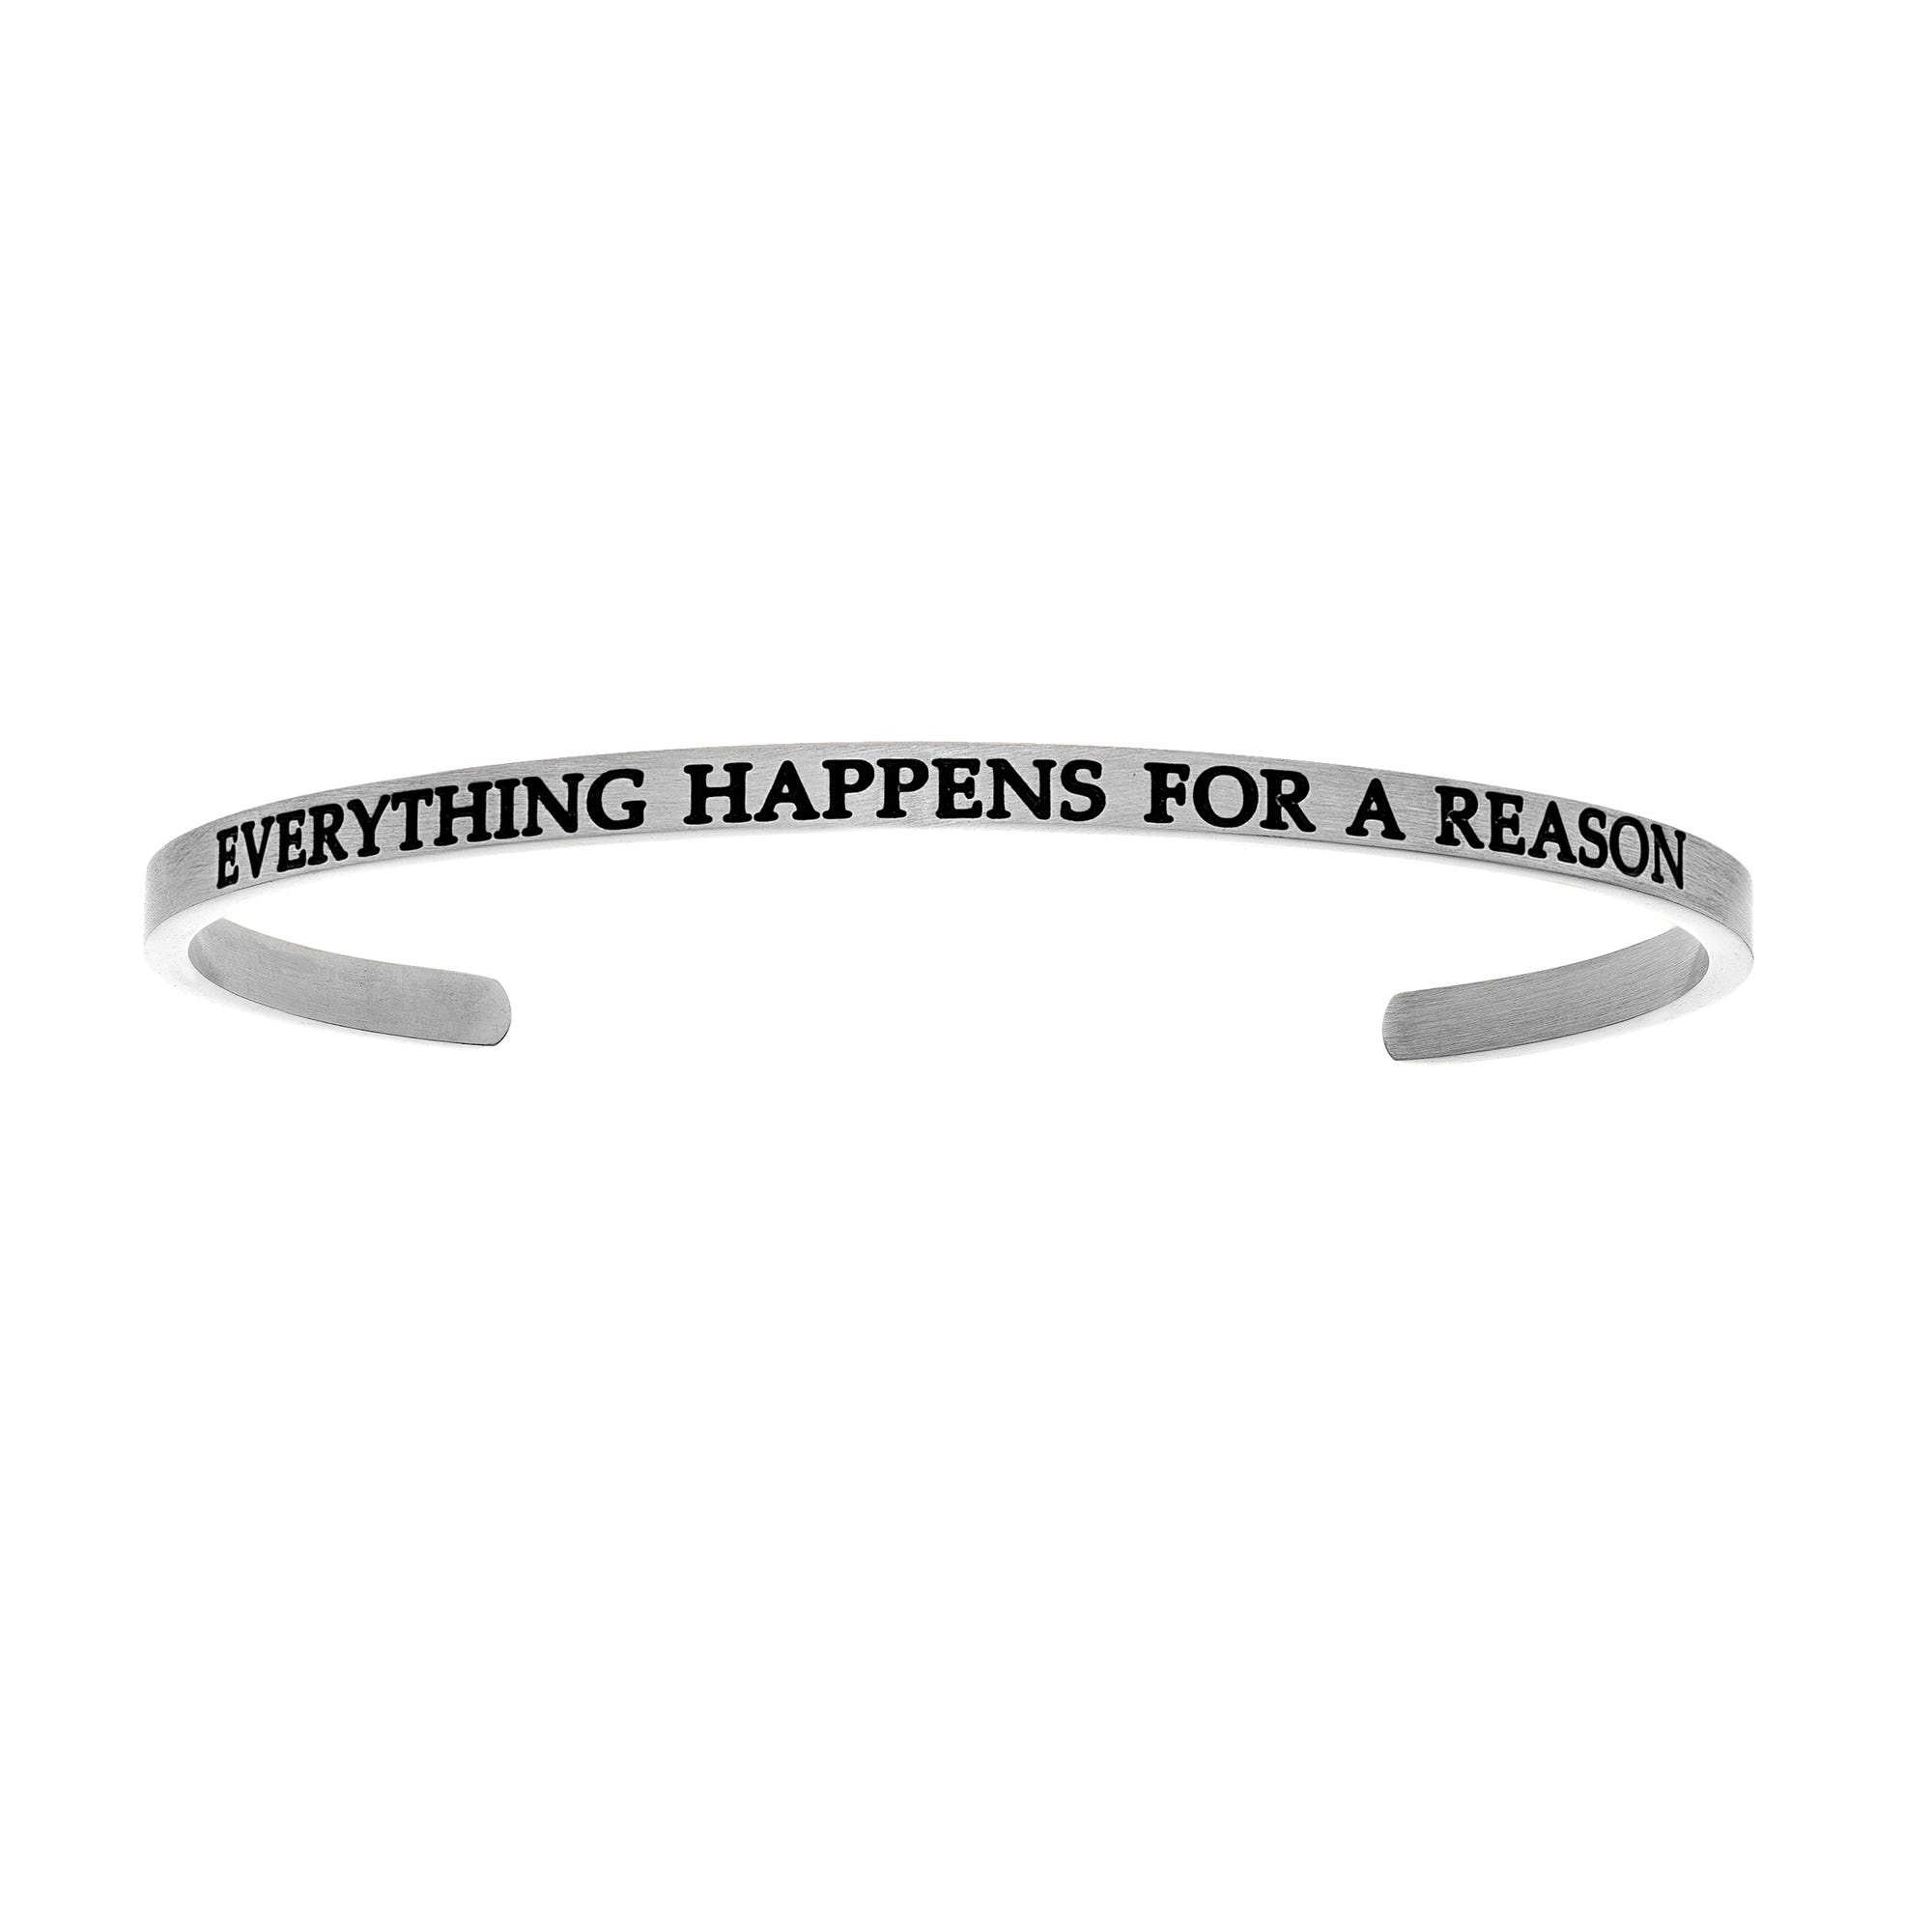 Everything Happens For A Reason. Intuitions Cuff Bracelet in White Stainless Steel